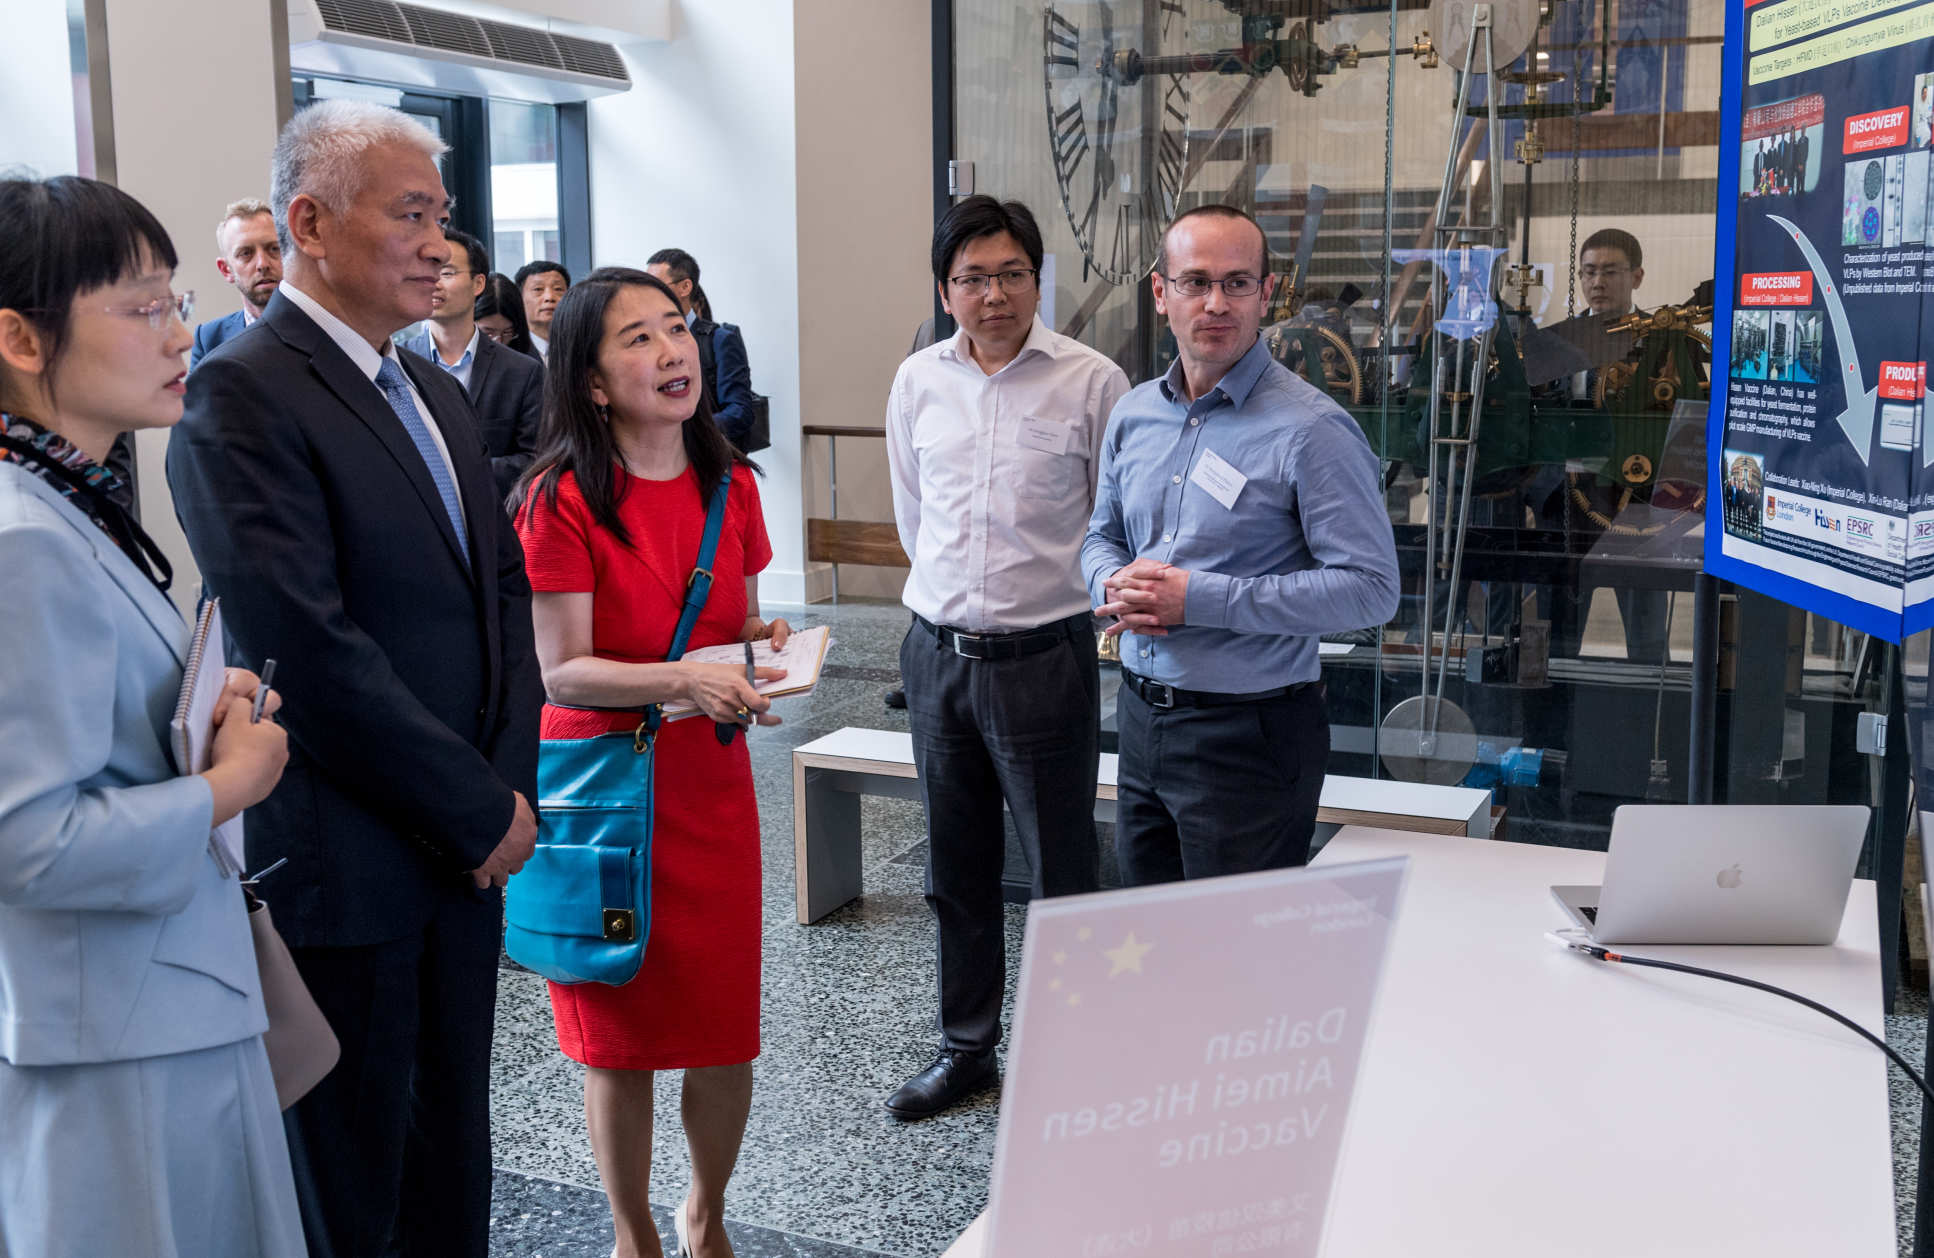 The Minister learned about UK-China vaccine collaborations